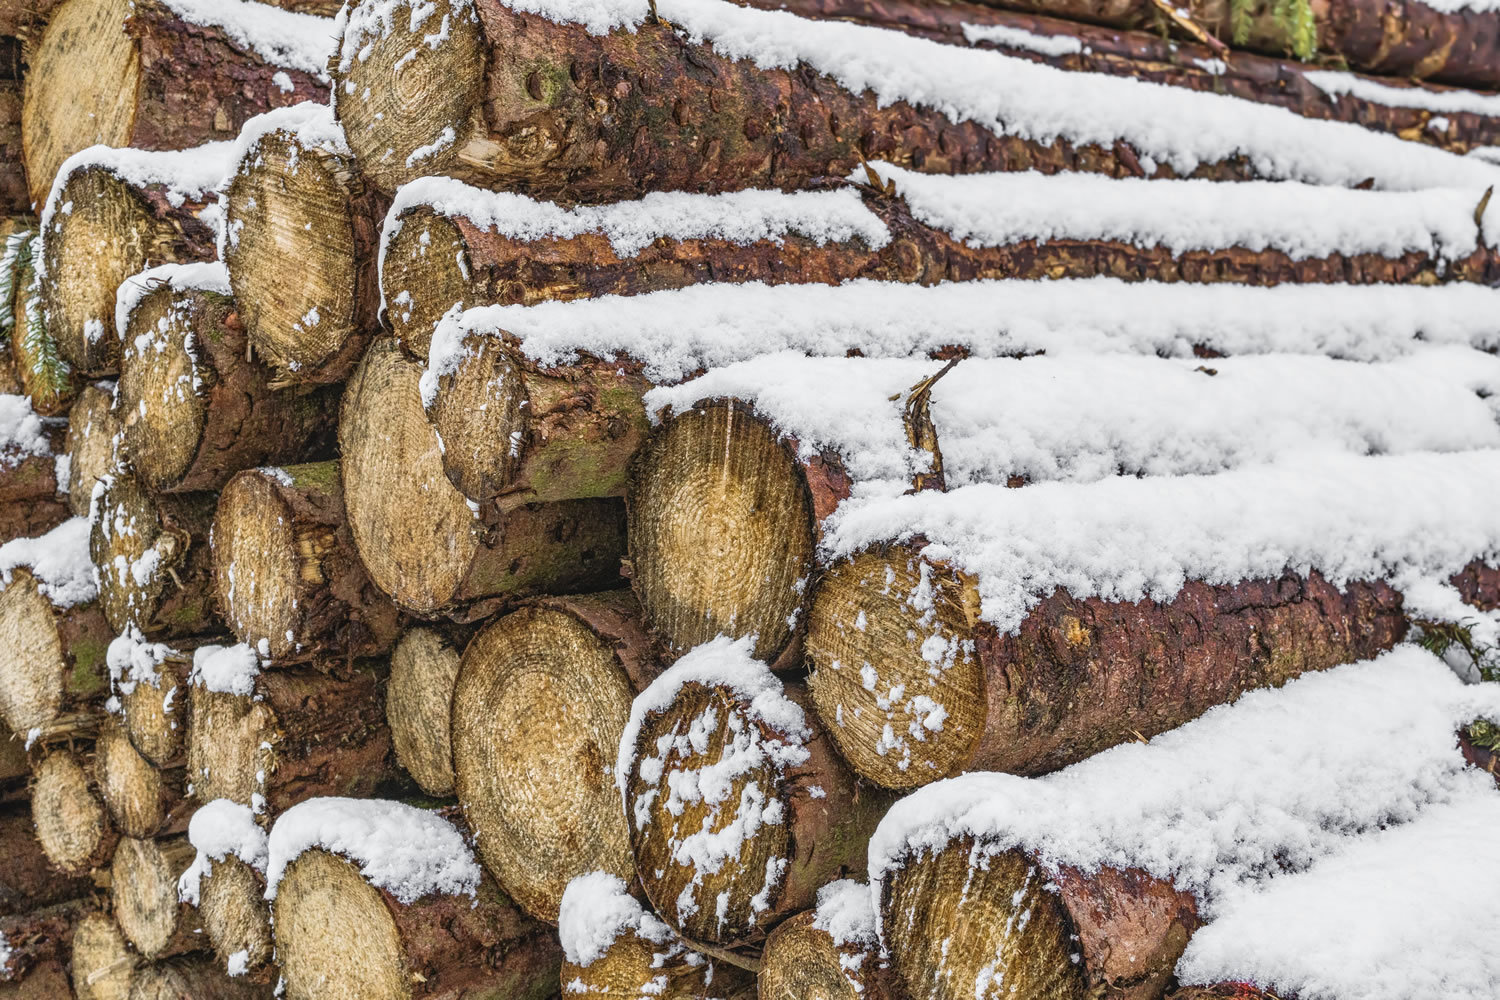 Snowy Logs Wallpaper Mural